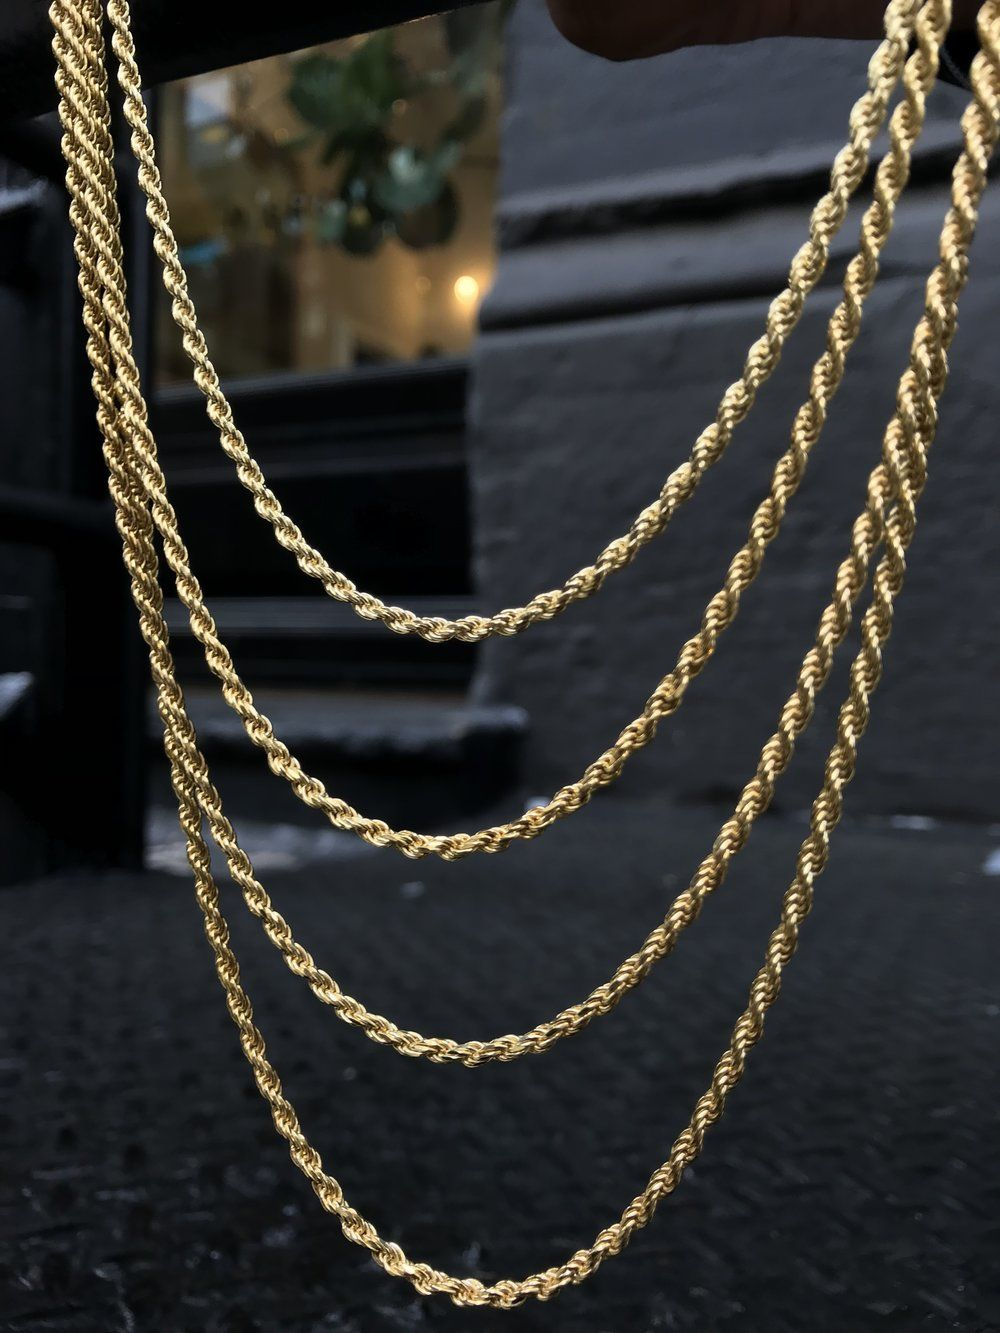 e090f064883c9 2.5MM Rope Chain - Vermeil | Gold X | Chain, Jewelry